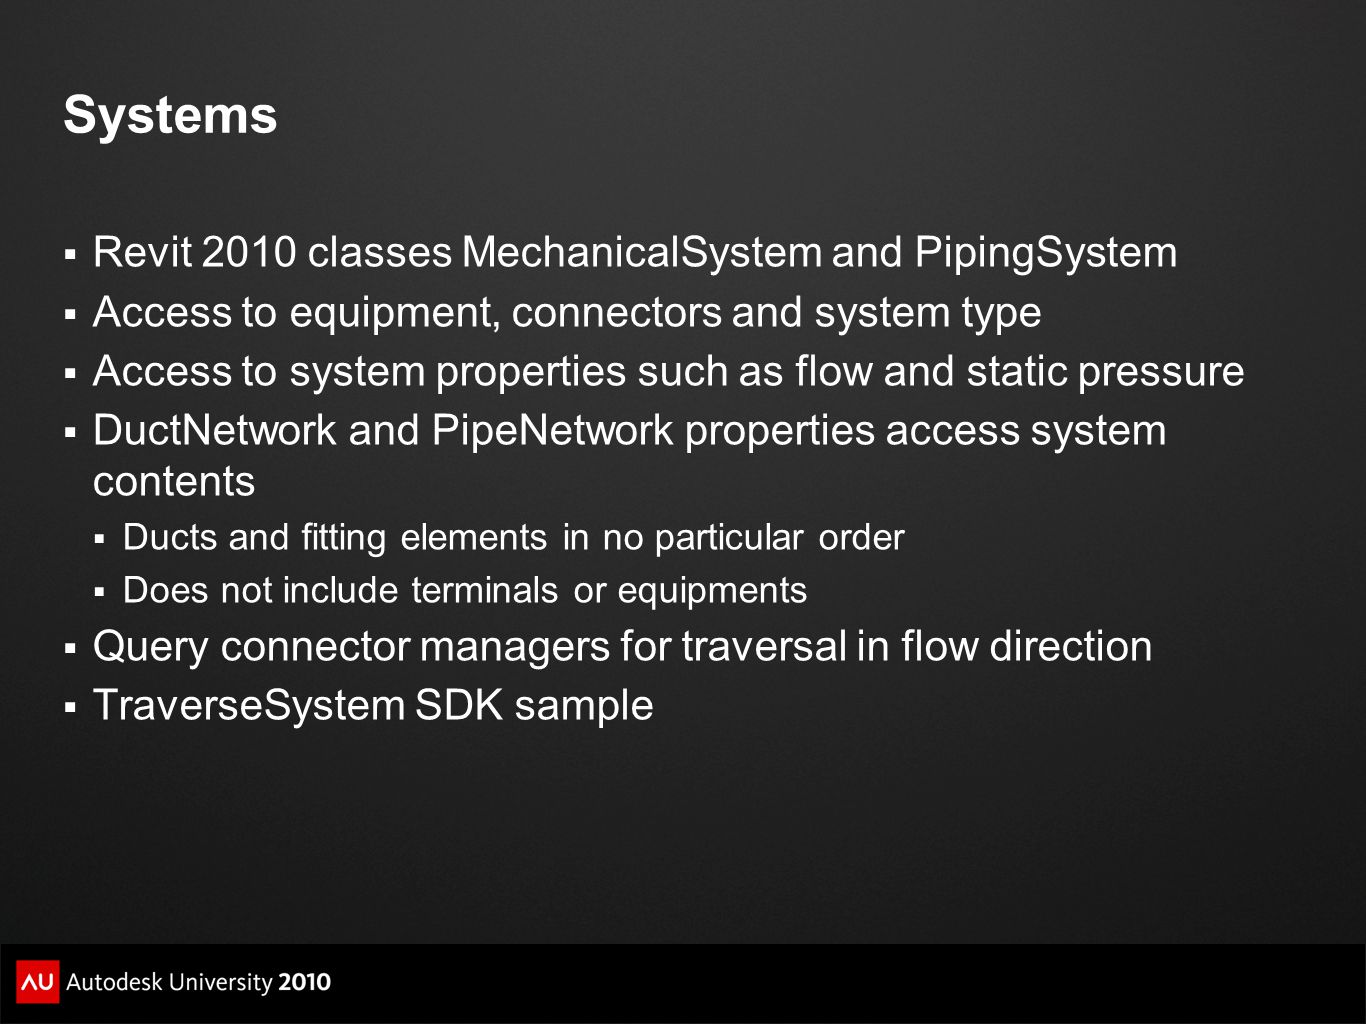 Systems Revit 2010 classes MechanicalSystem and PipingSystem